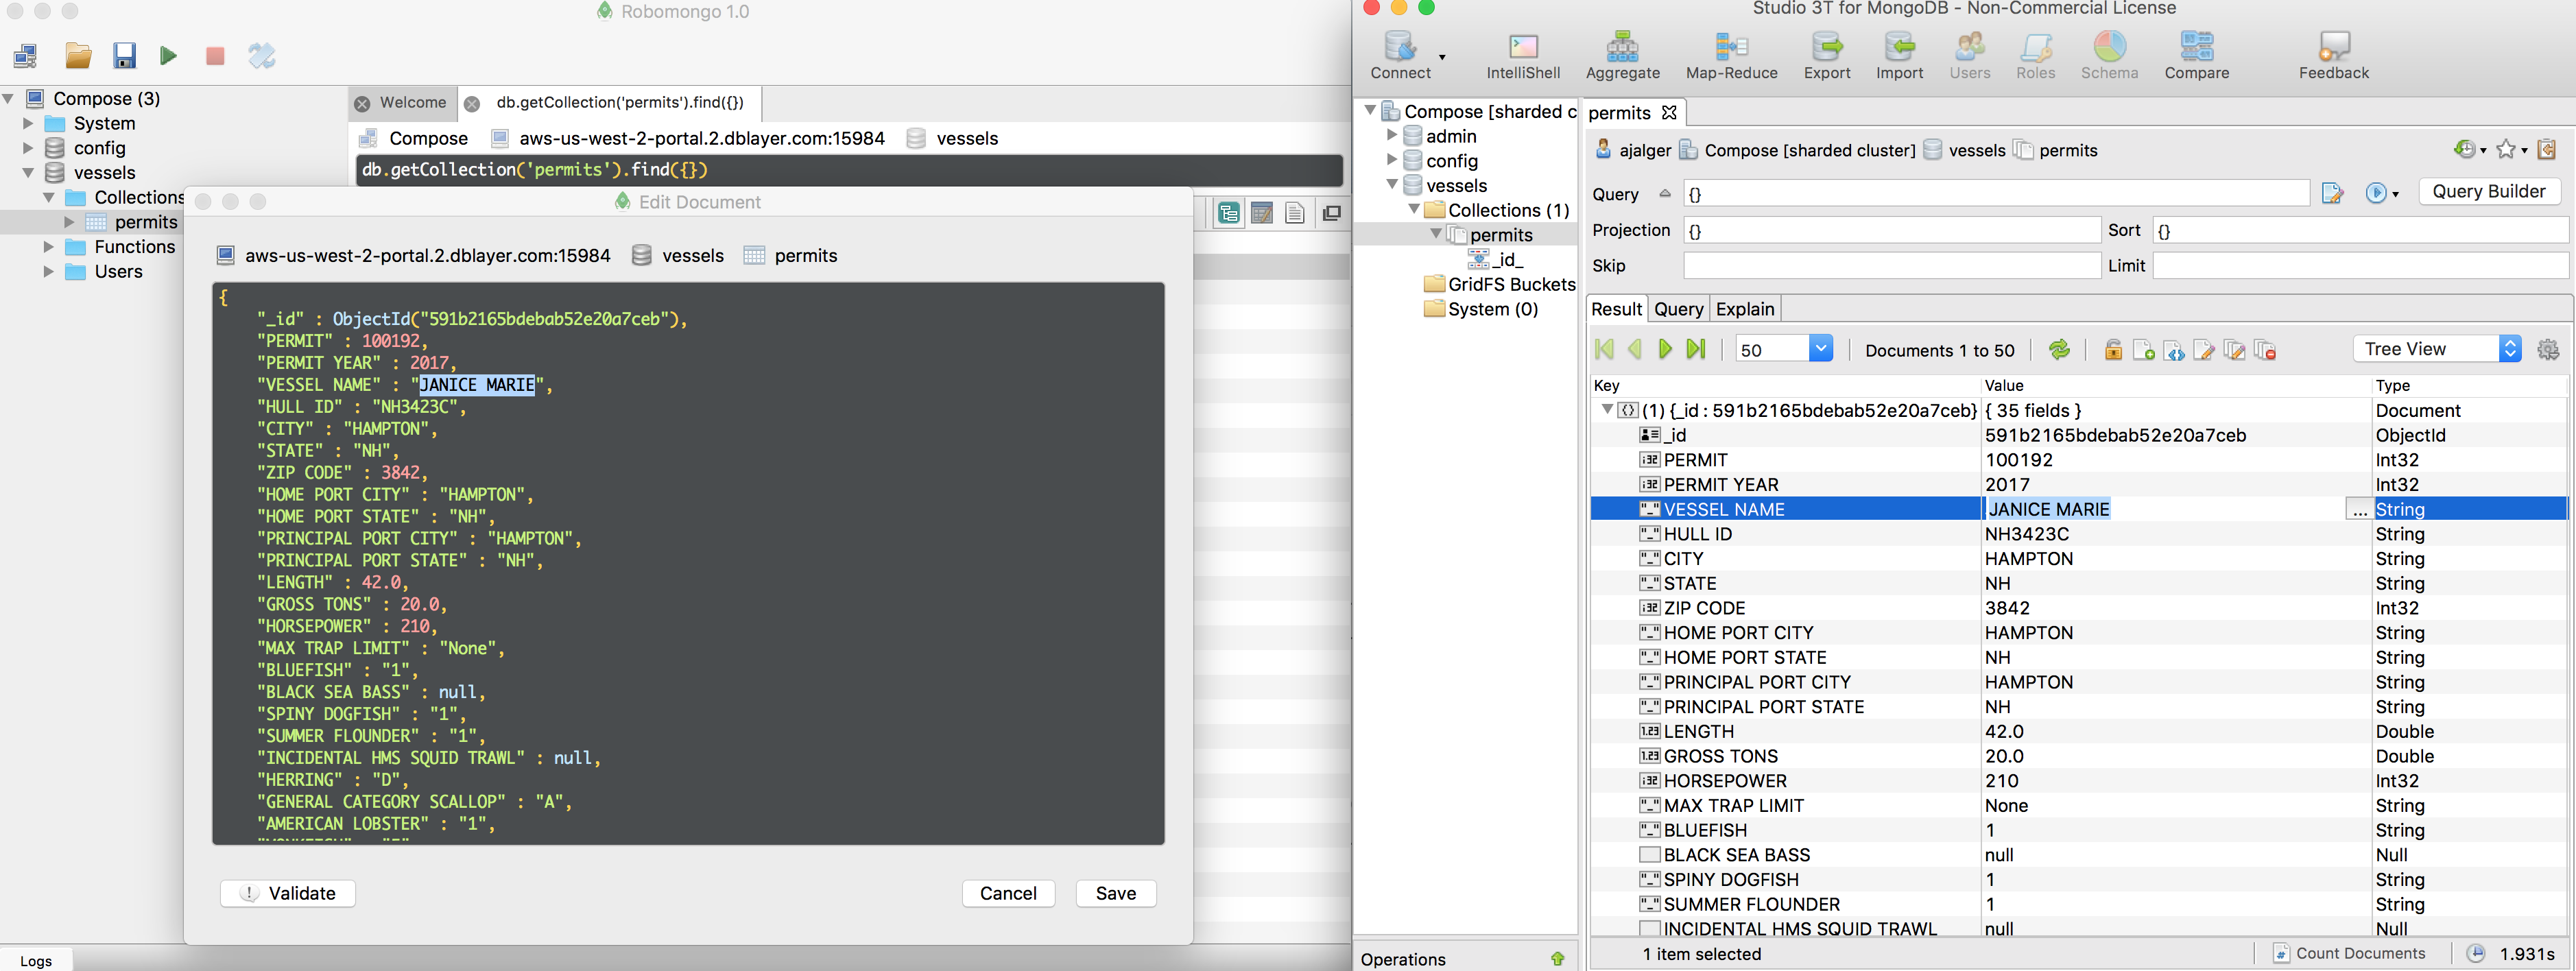 Taking a Look at Robomongo and Studio 3T with Compose for MongoDB